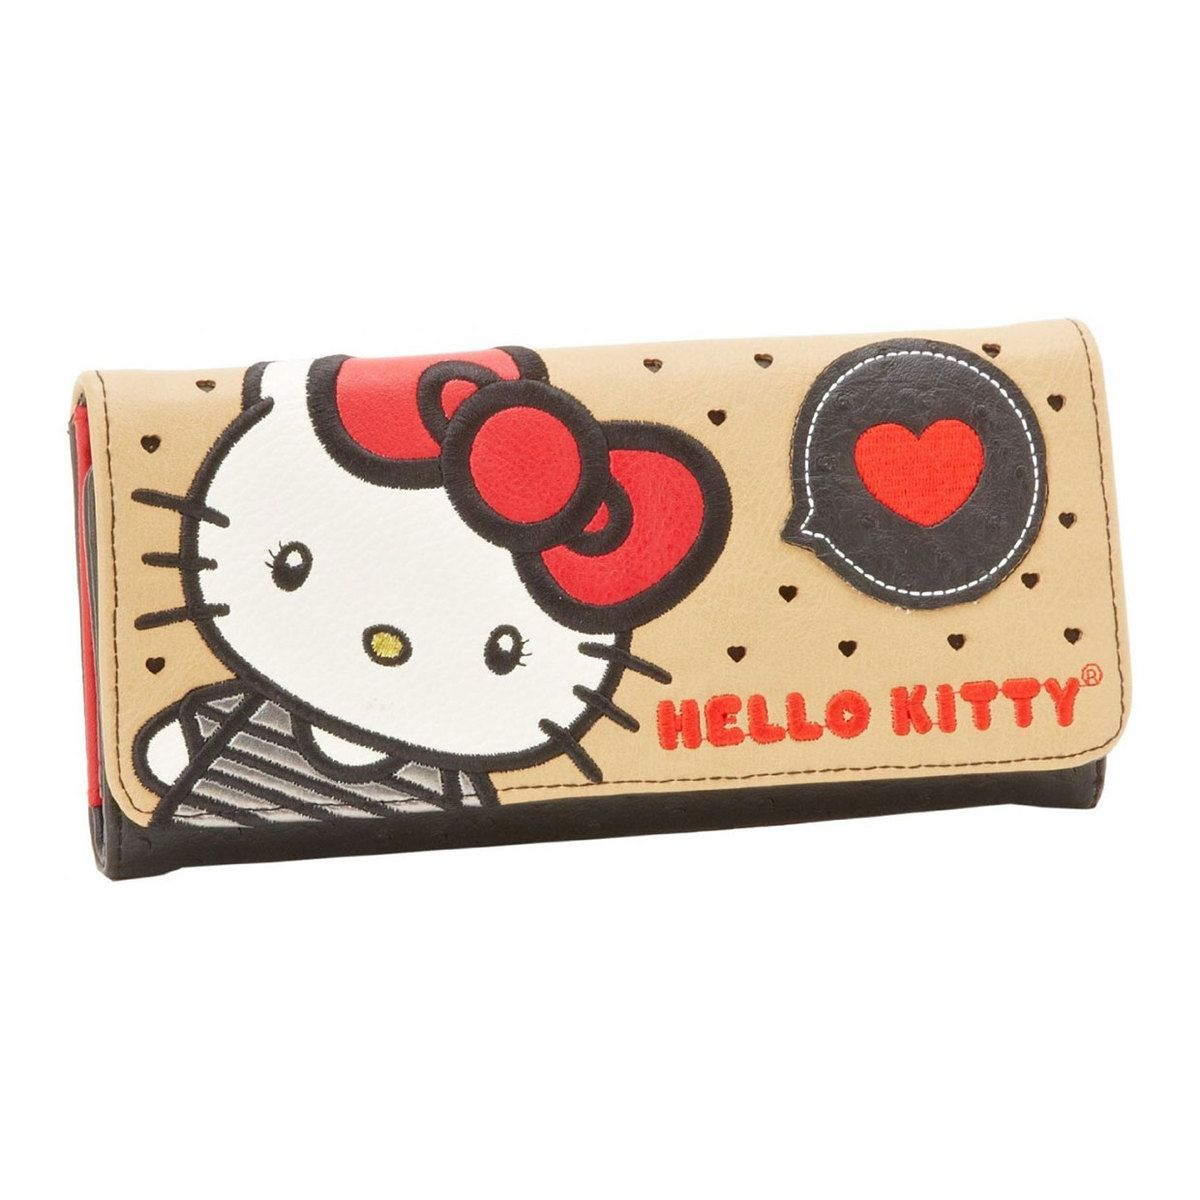 Loungefly x Hello Kitty Large Bow Tan Tri-Fold Wallet - Fugitive Toys